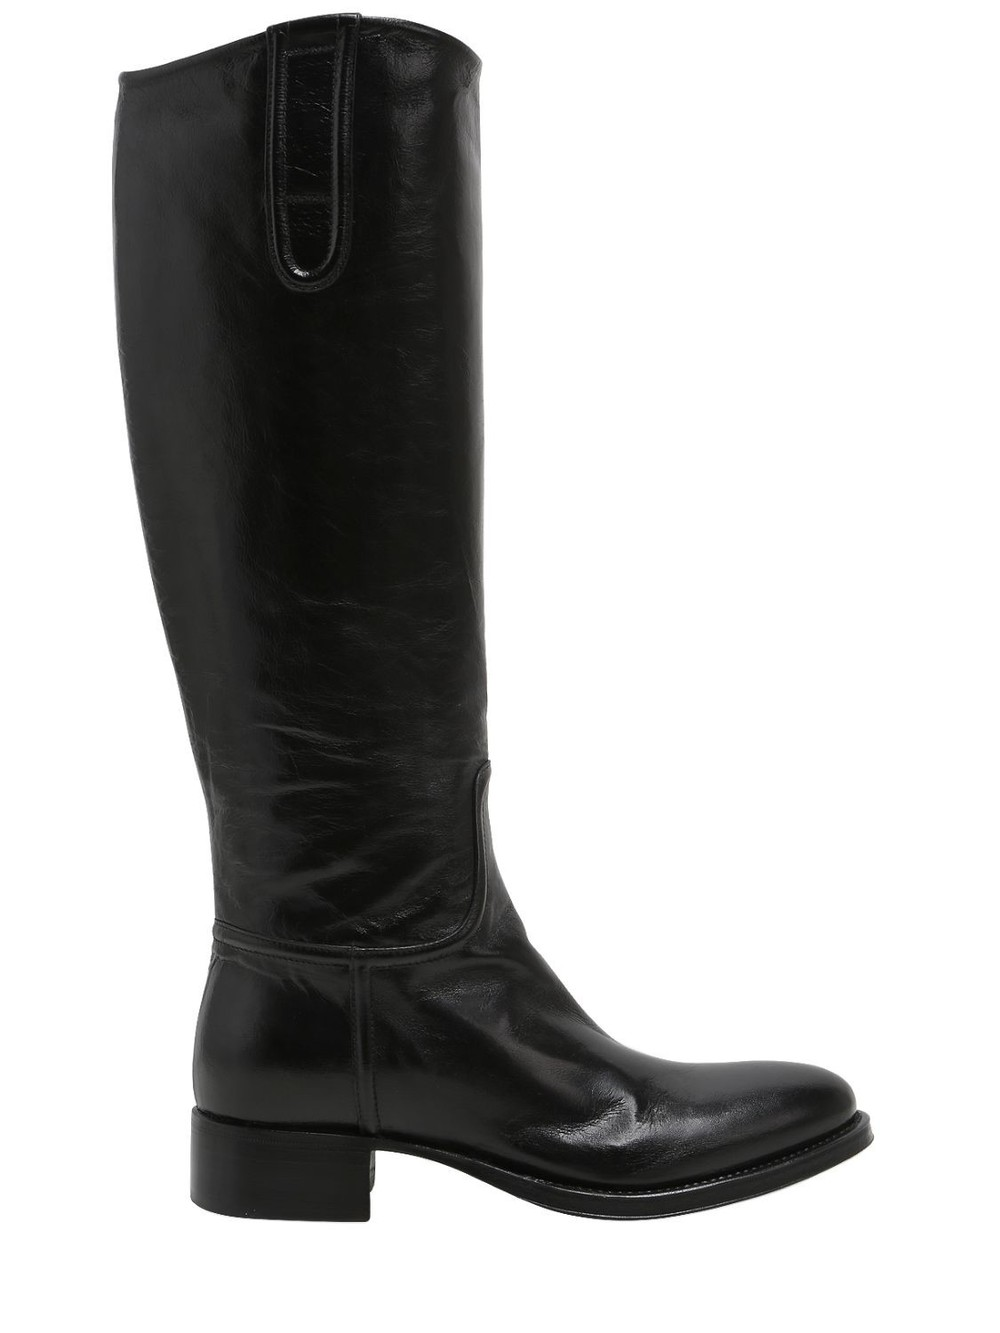 ROCCO P. 20mm Leather Rider Boots in black